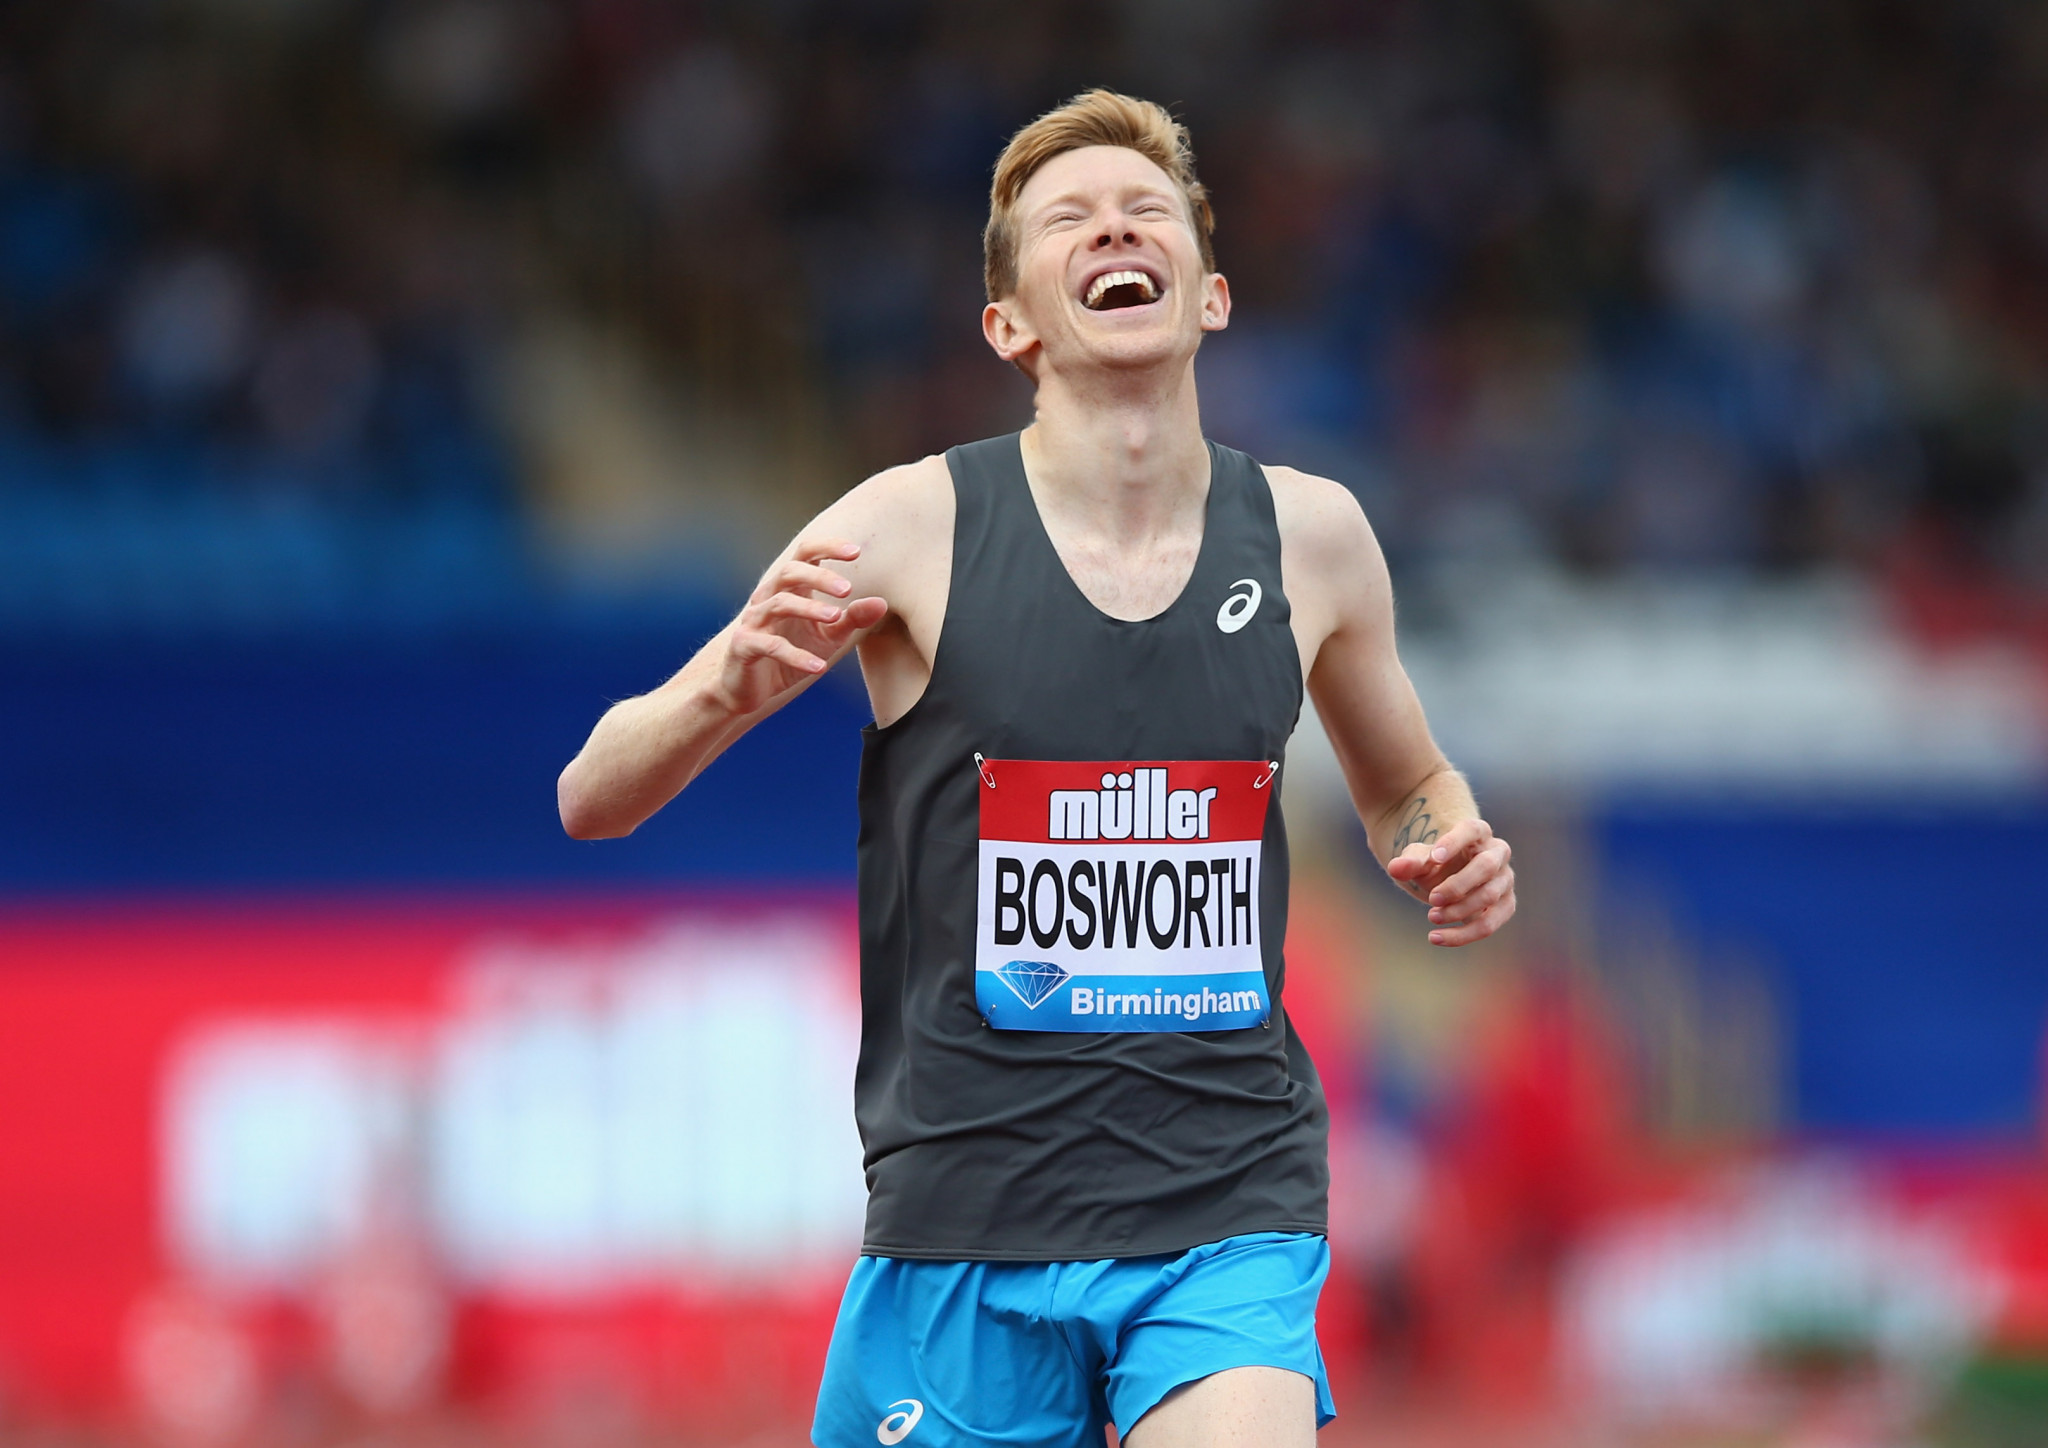 Tom Bosworth admits race-walking has to evolve ©Getty Images